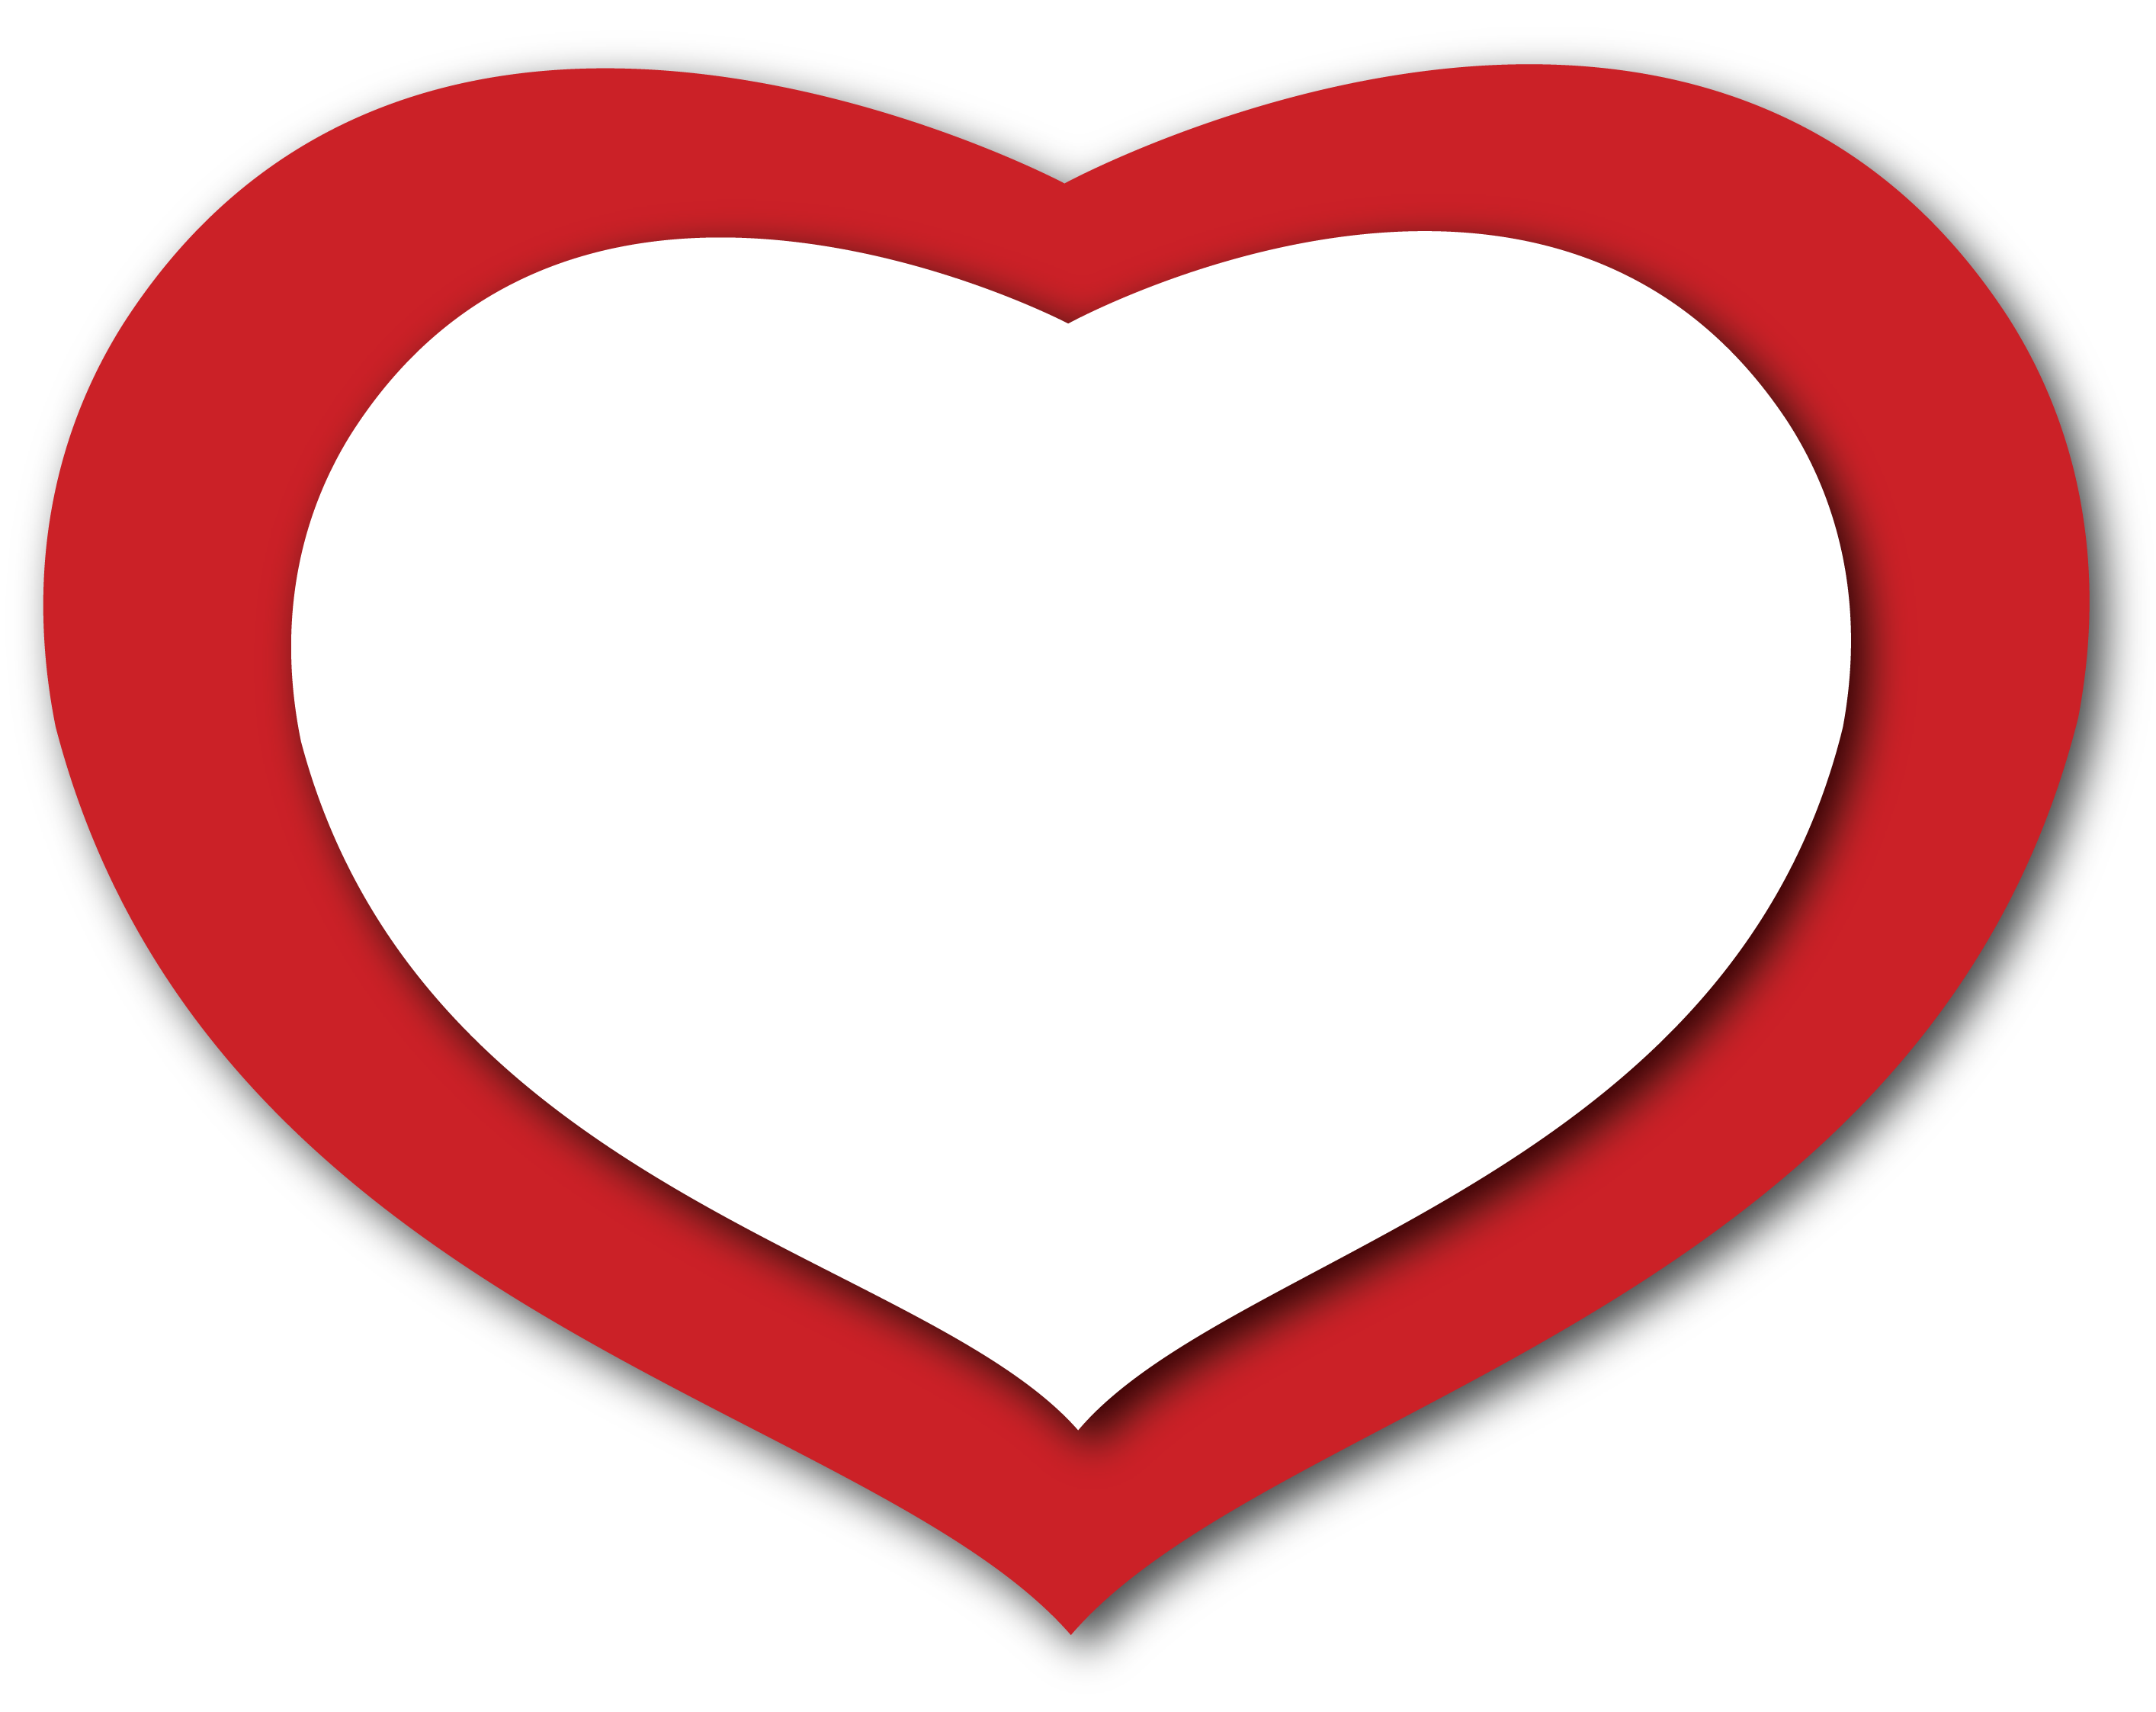 Free picture of red. Heart clipart transparent background